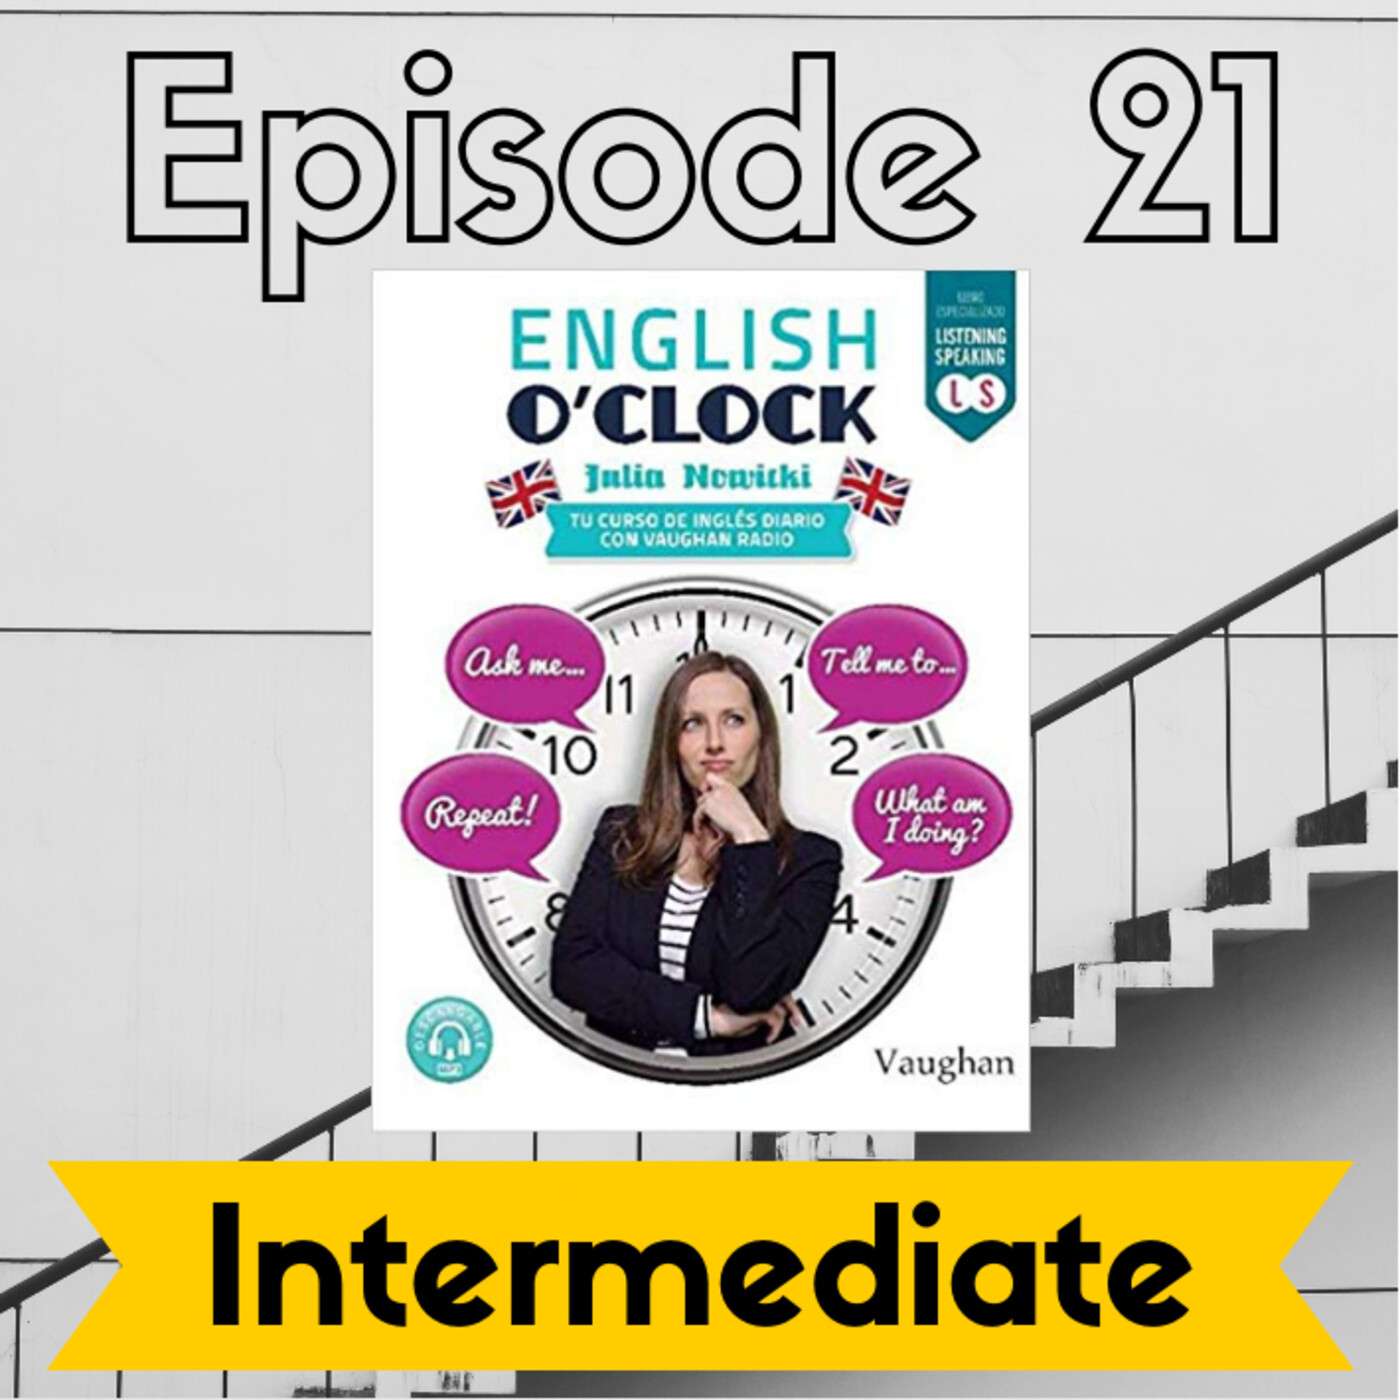 English o'clock 2.0 - Intermediate Episode 21 (20.10.2020)